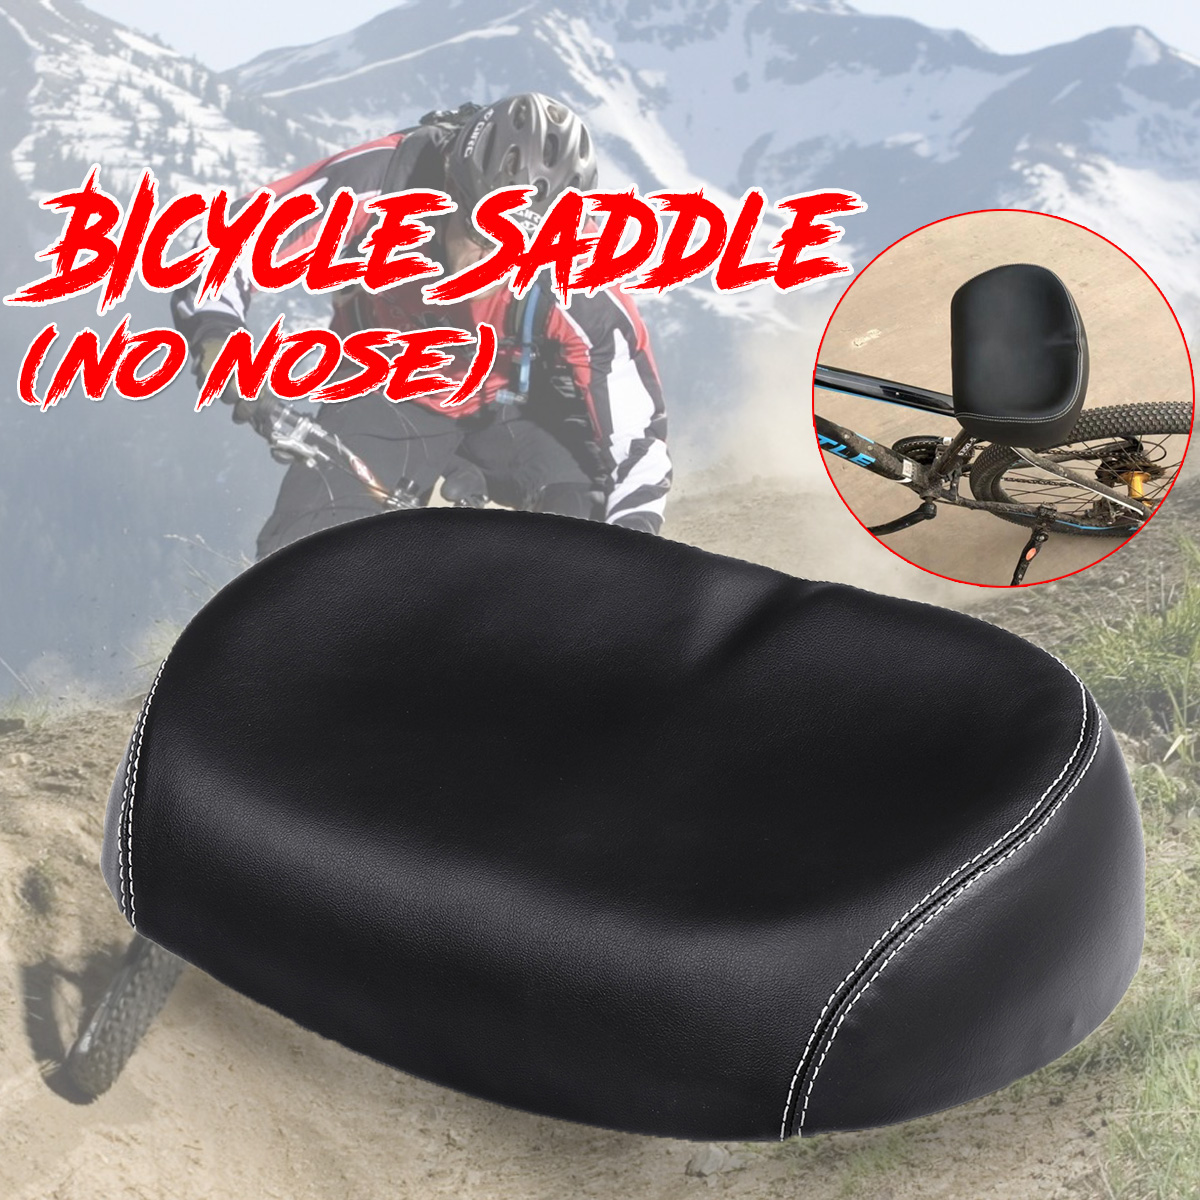 Accessories Sports Cycling Seat Pad Noseless Bicycle Saddle Big Ass Wide Large